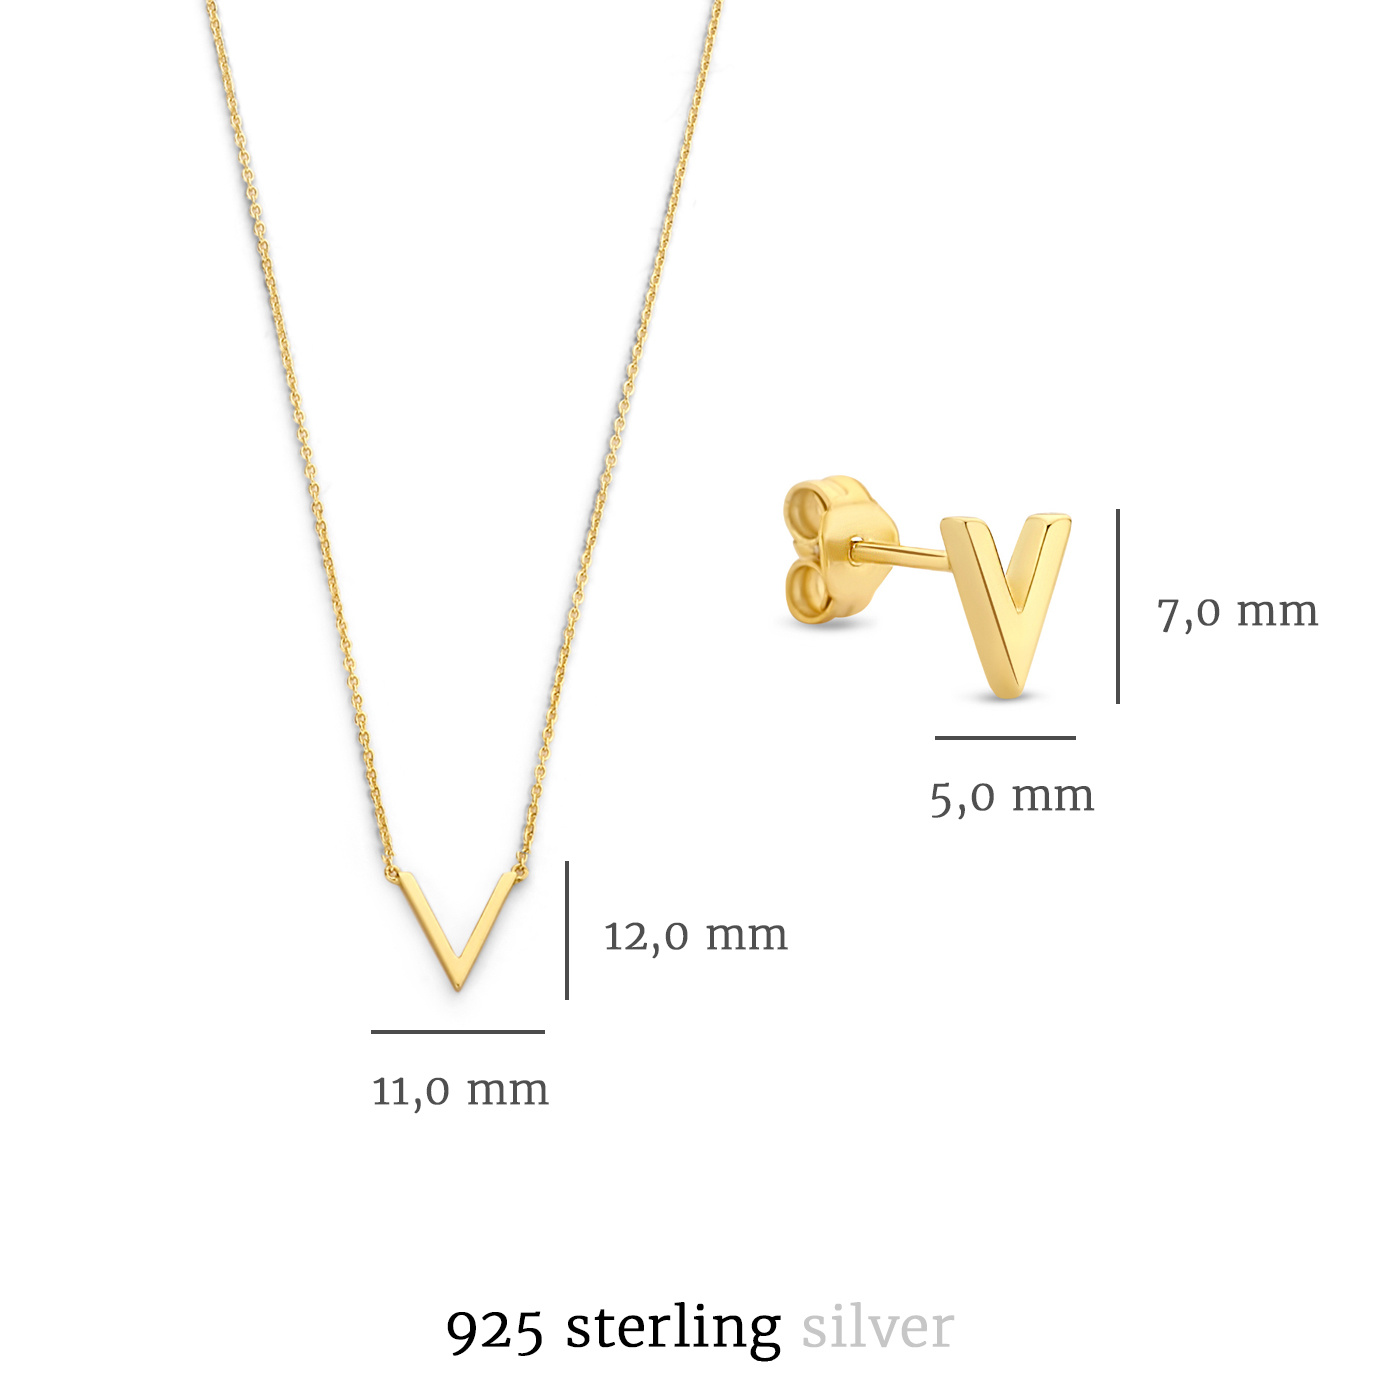 Selected Jewels Selected Gifts 925 sterling silver gold colored set necklace and ear studs